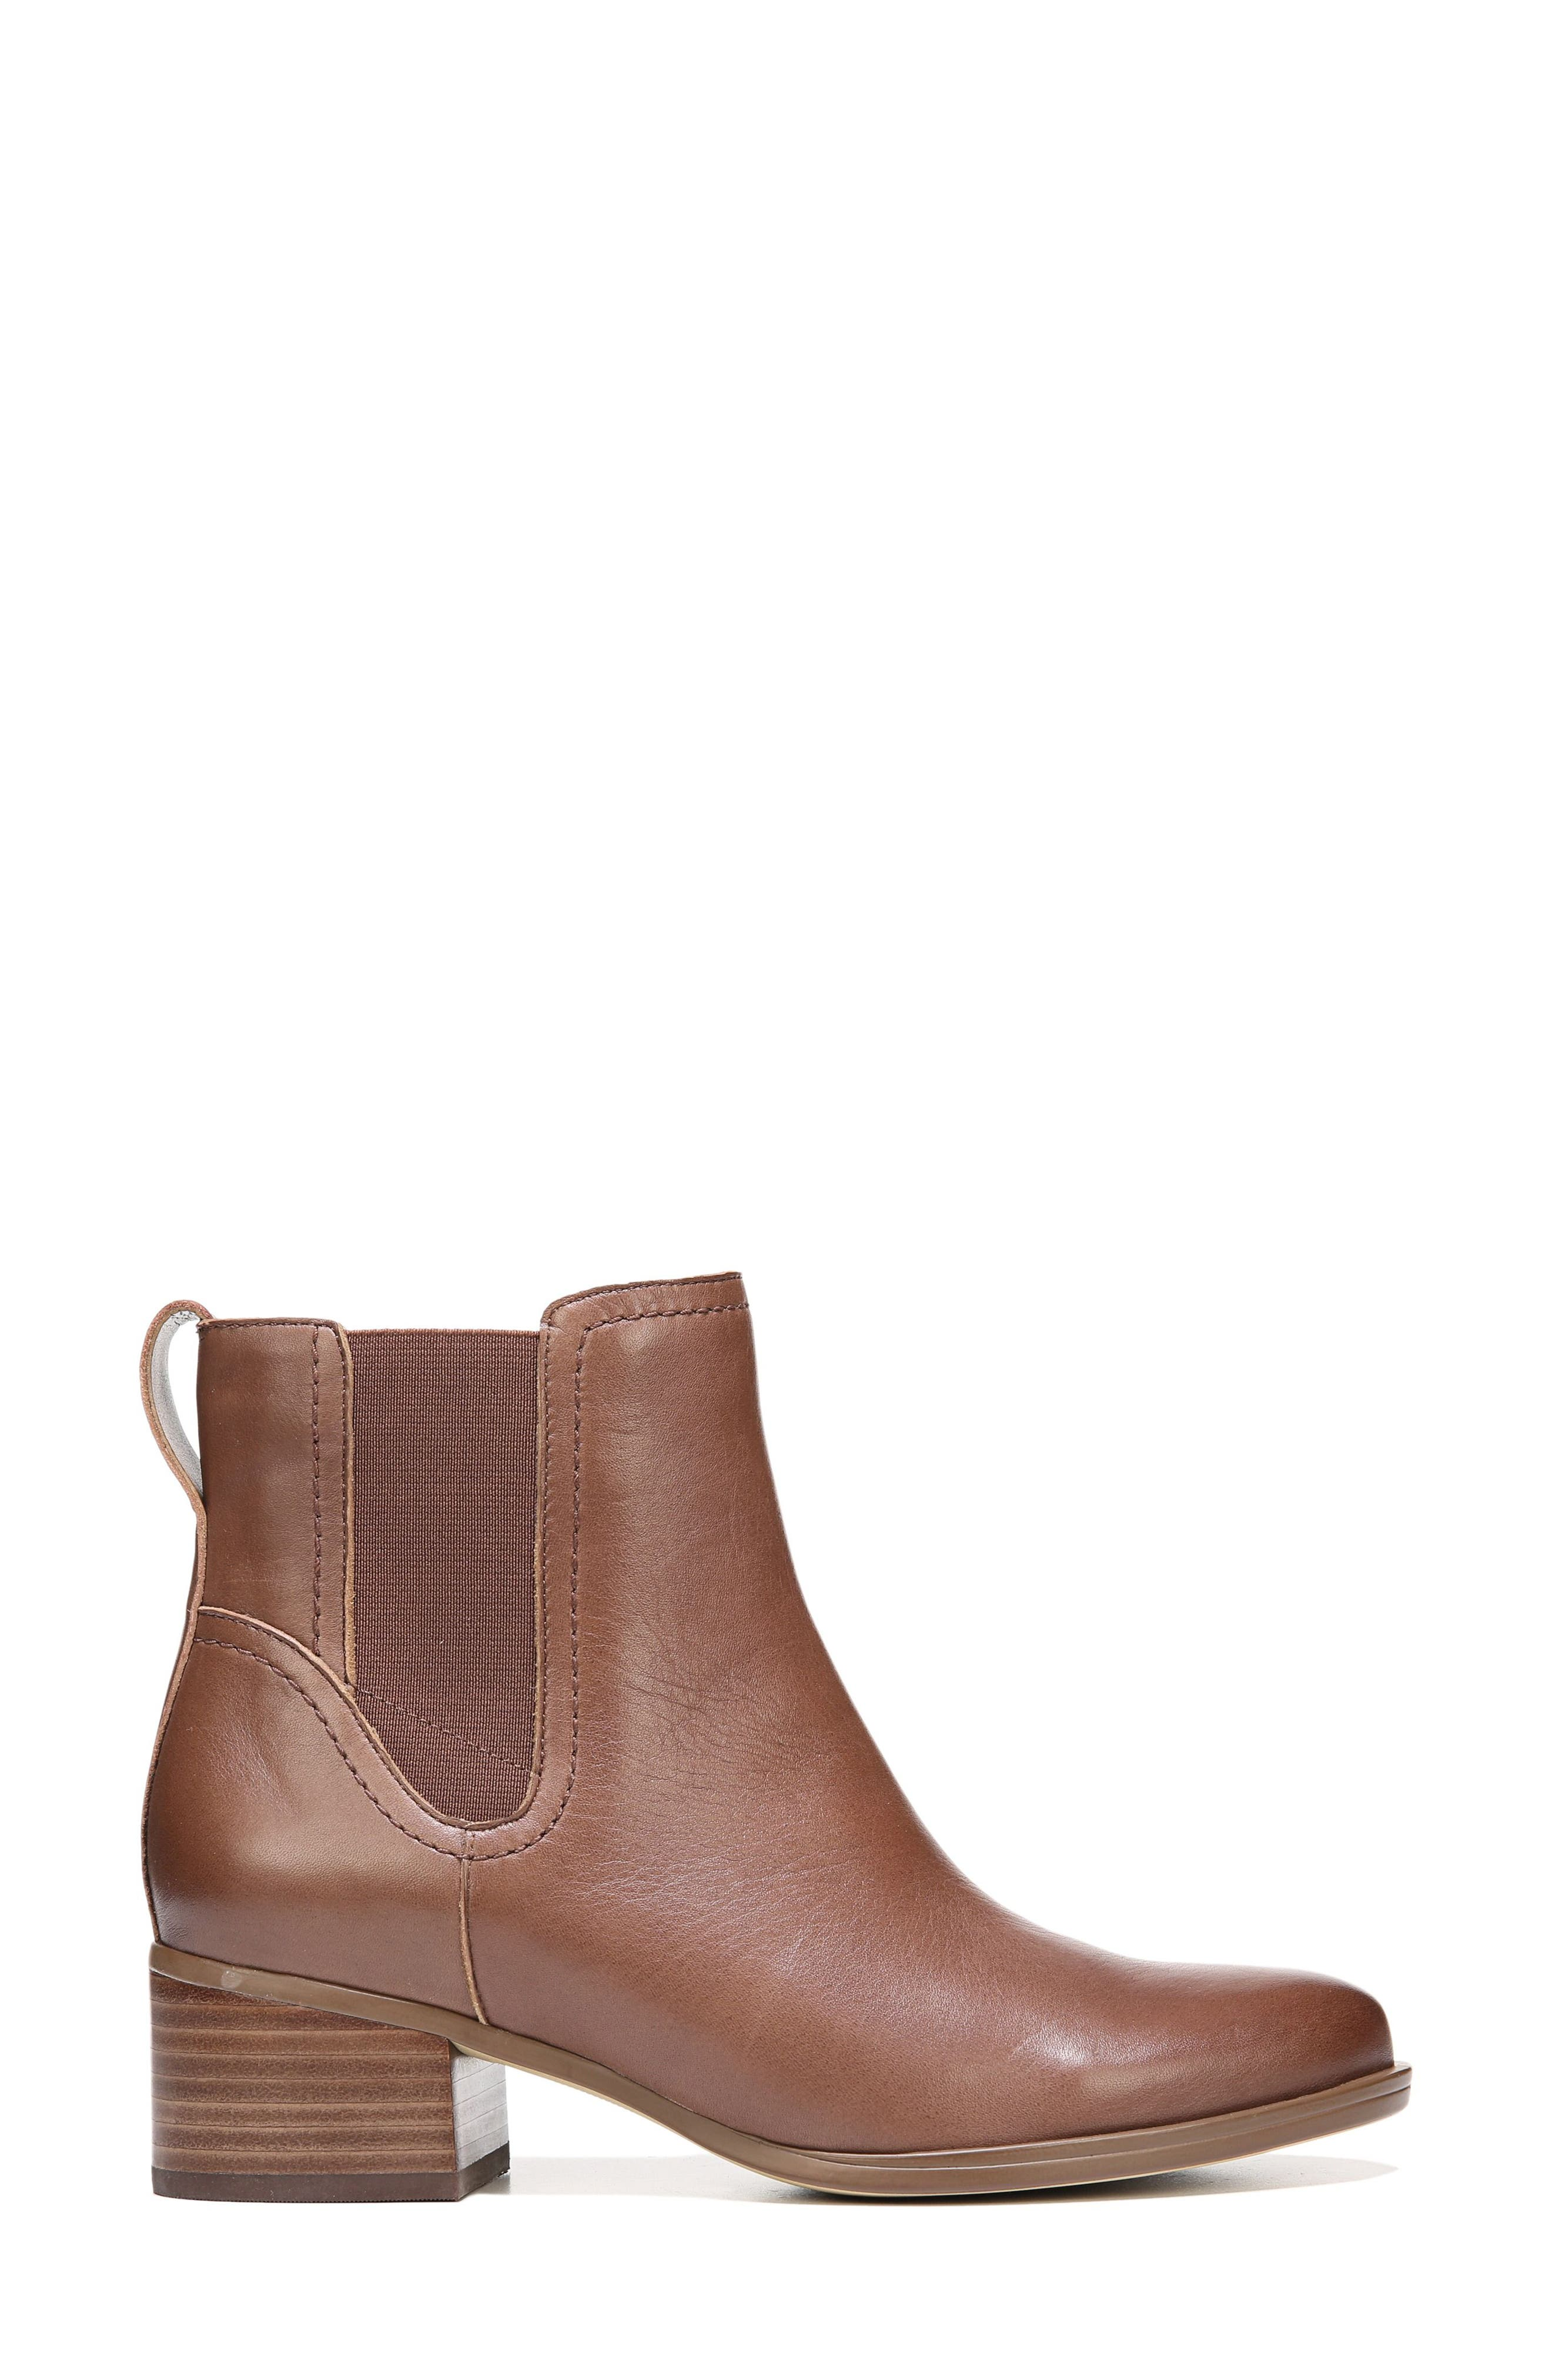 Dallas Chelsea Boot,                             Alternate thumbnail 3, color,                             Coffee Bean Leather